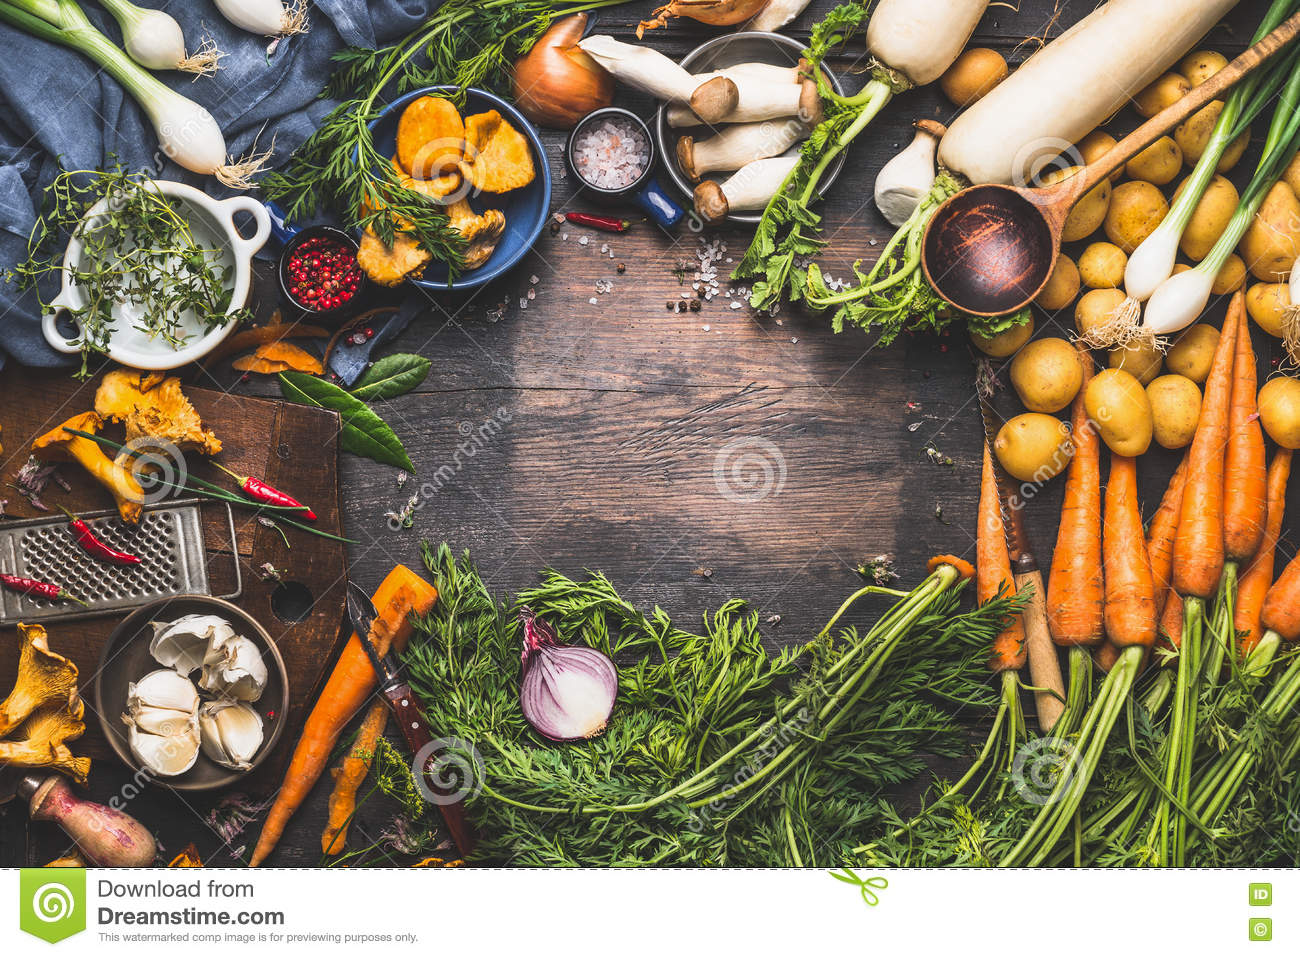 Vegetables cooking ingredients for tasty vegetarian dishes. Carrot , potato , onion , mushrooms , garlic , thyme , parsley on dark